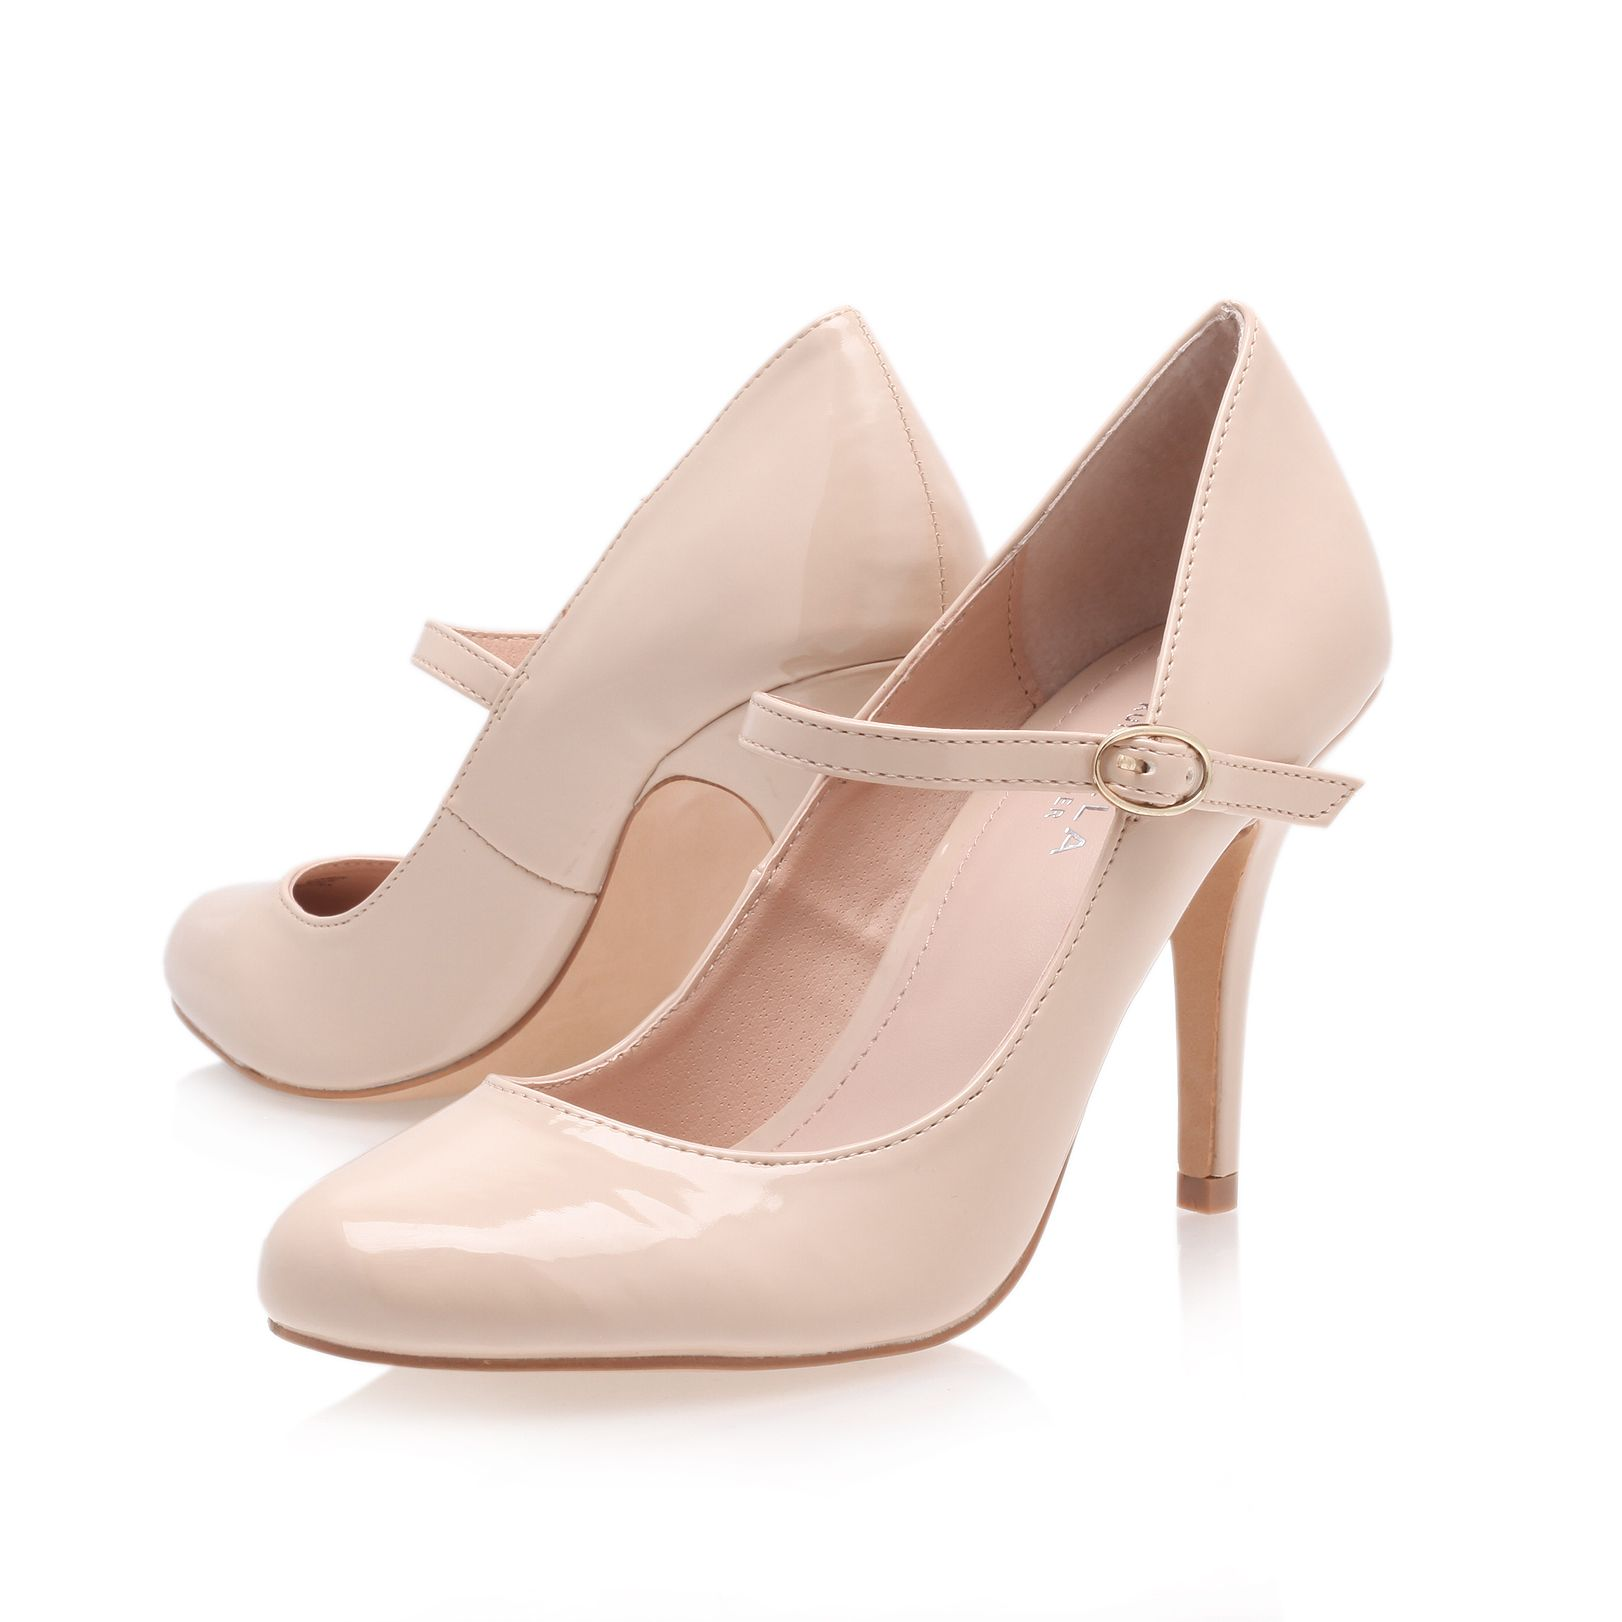 Kady court shoes